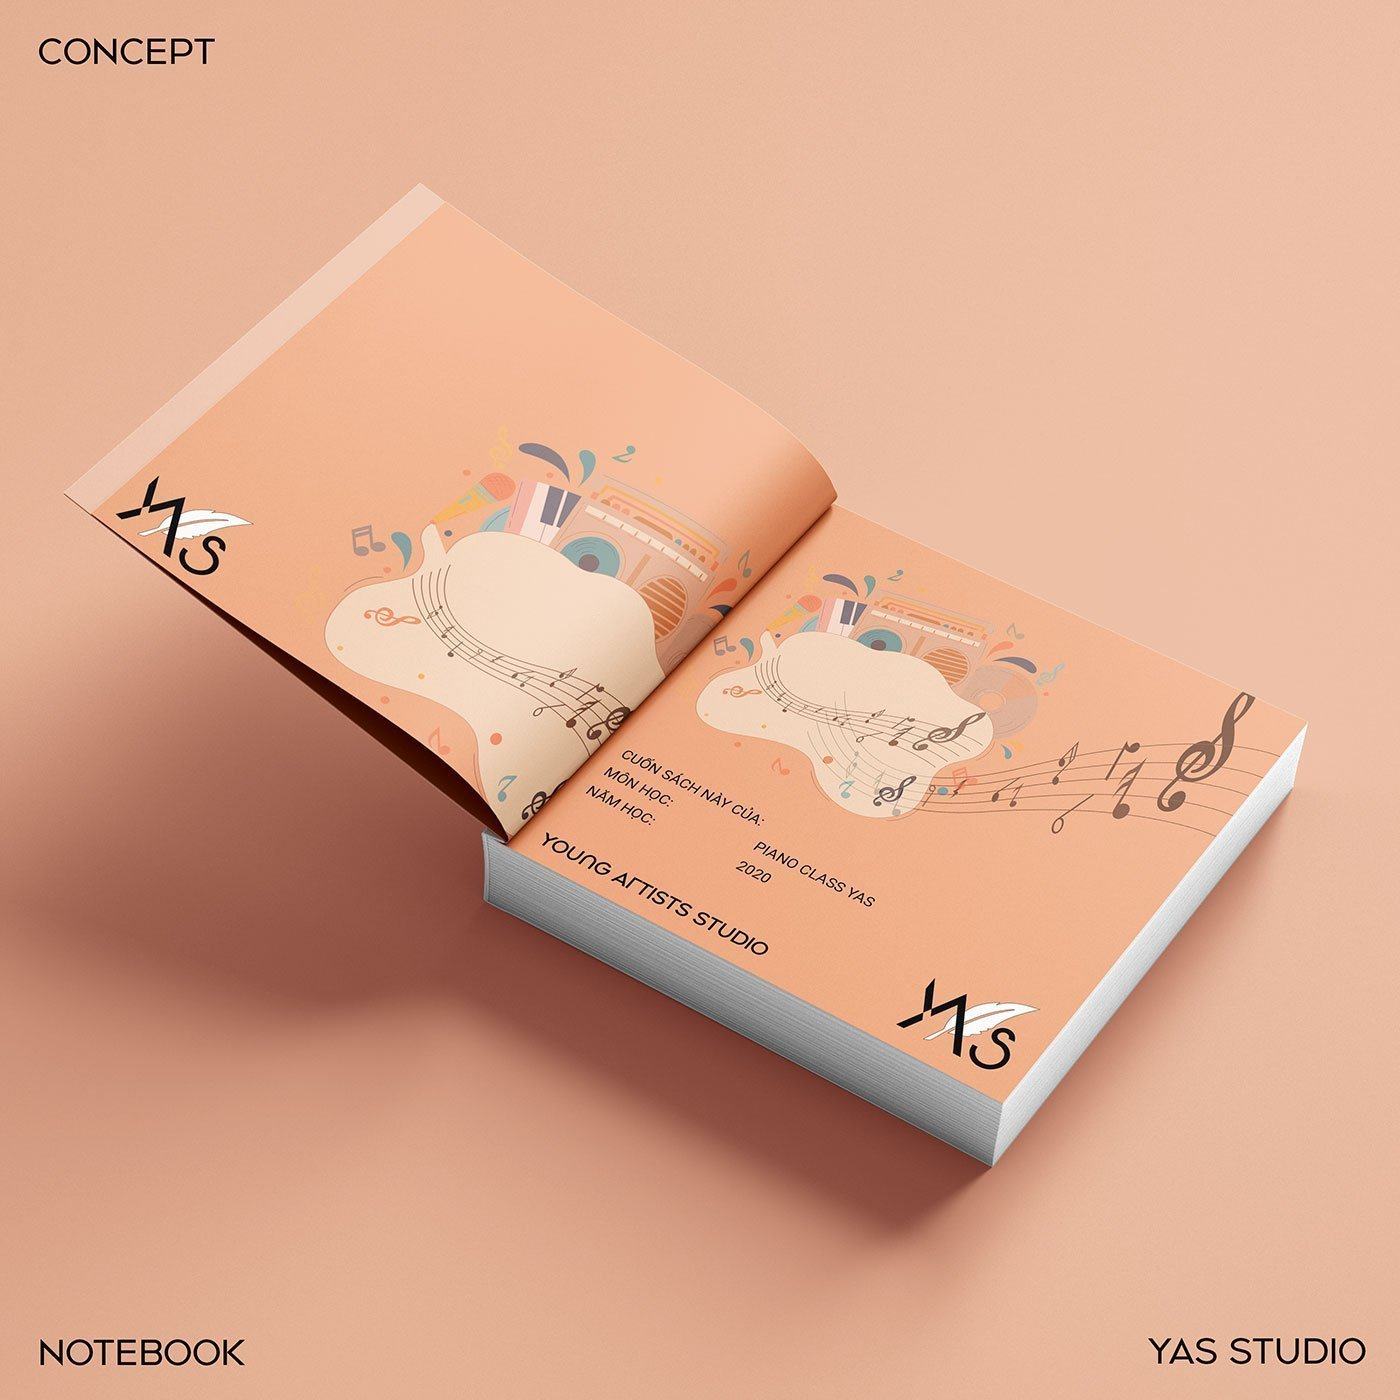 YAS Young Artists Studio official logo notebook cover-showcase-mockup design-branding design-visual-identity-design Vietnam-graphic-design-and-branding-web-design-professional-logo-design-Helixgram